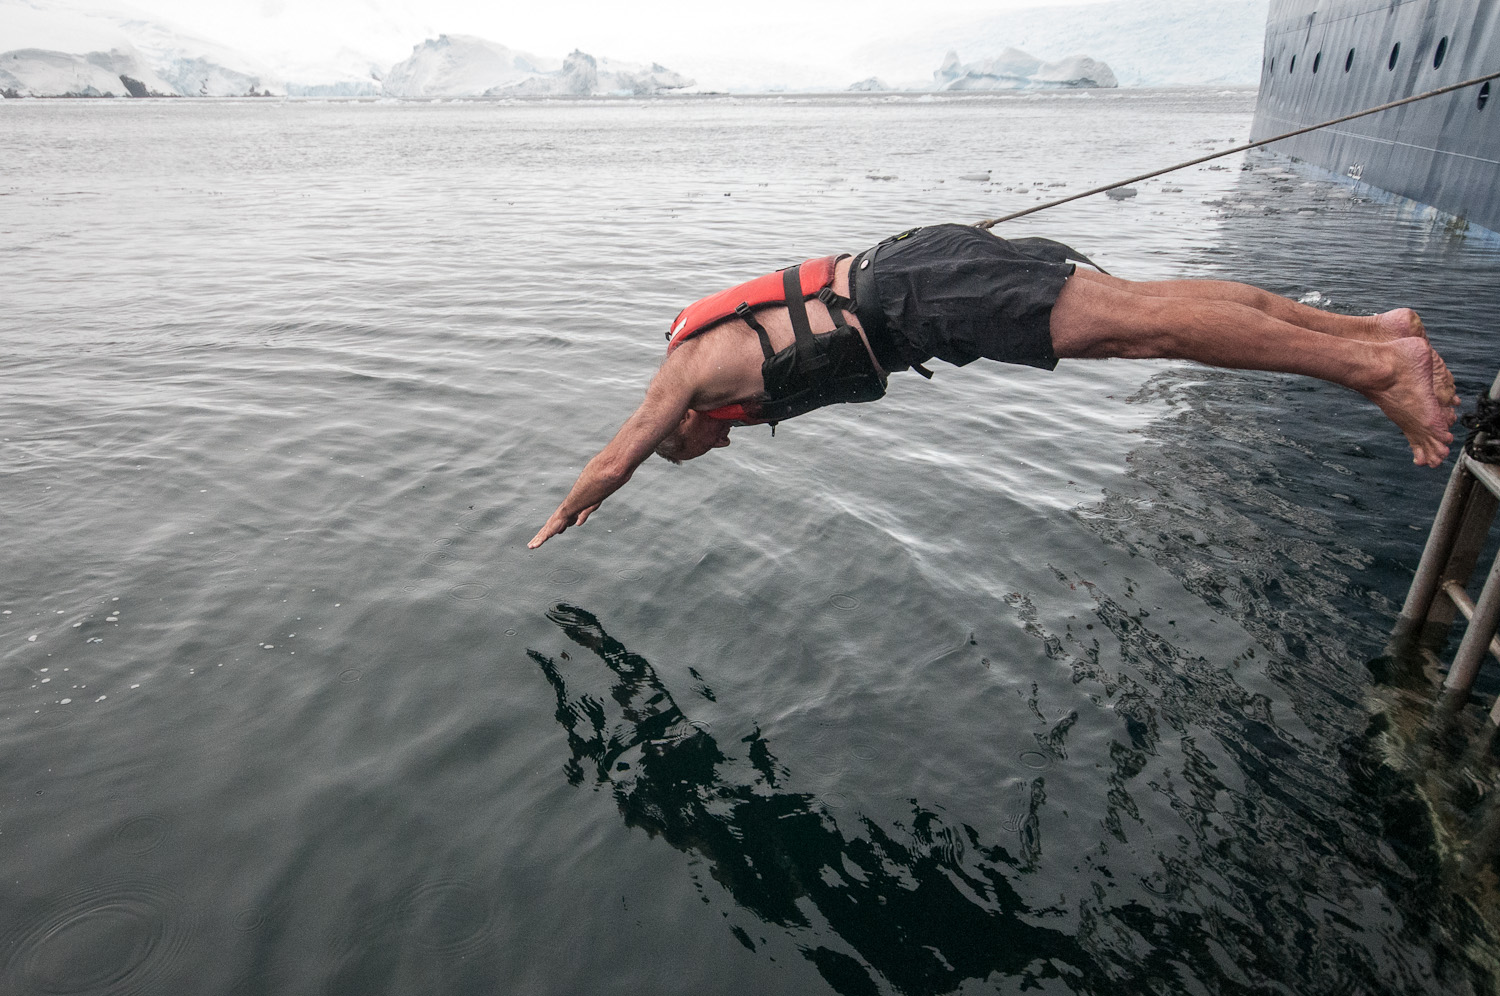 Diving in the icy water in Antarctica